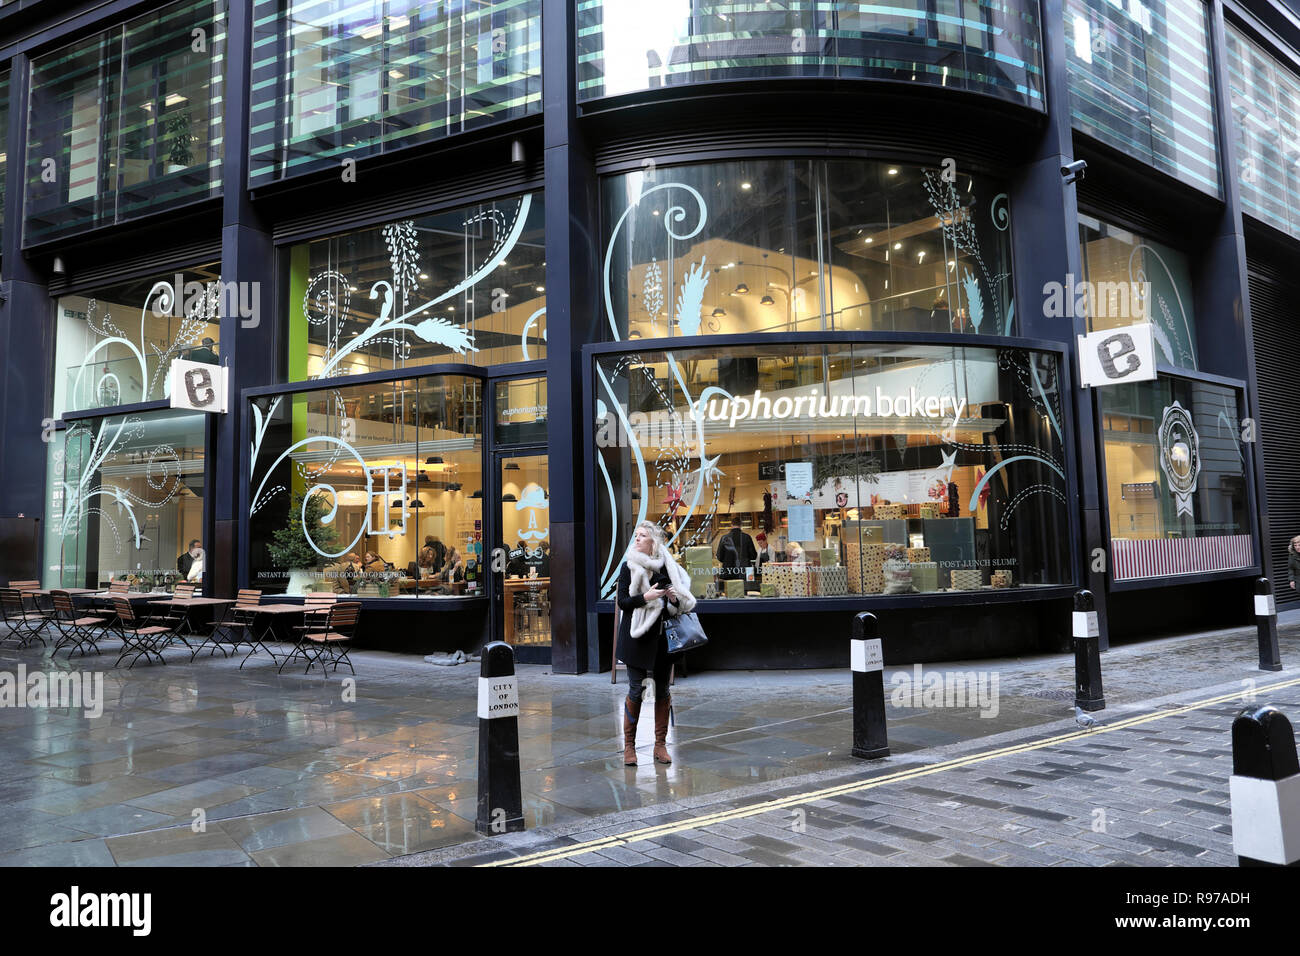 Euphorium Bakery and woman standing outside at Christmas time in Threadneedle Street City of London England UK  KATHY DEWITT - Stock Image